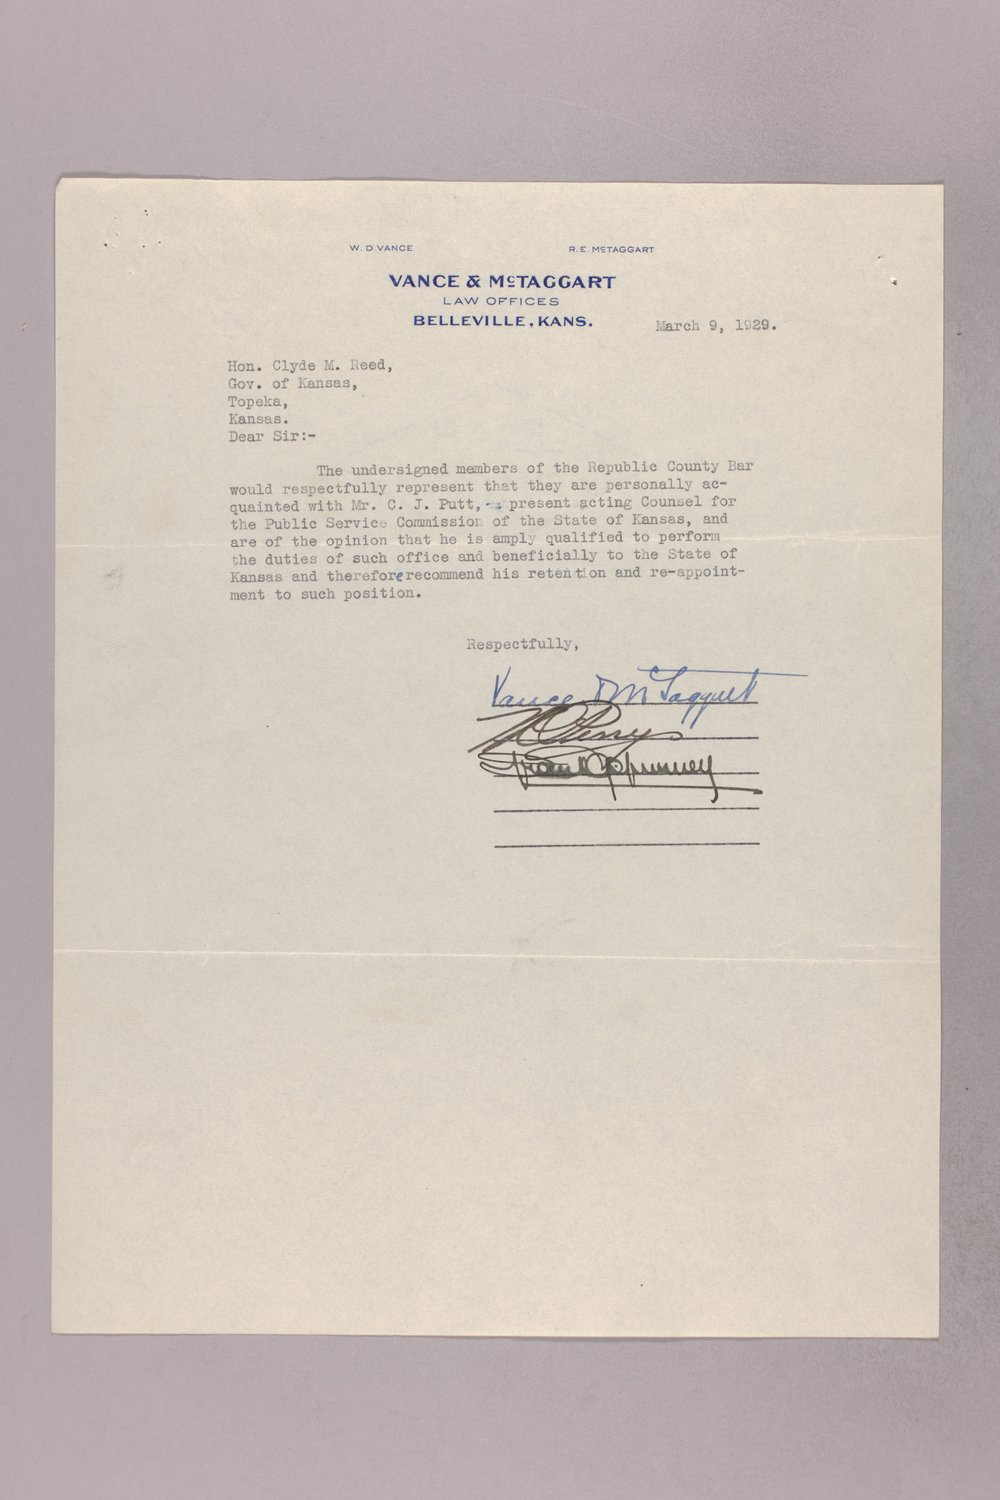 Governor Clyde M. Reed correspondence, Public Service Commission applications - 2